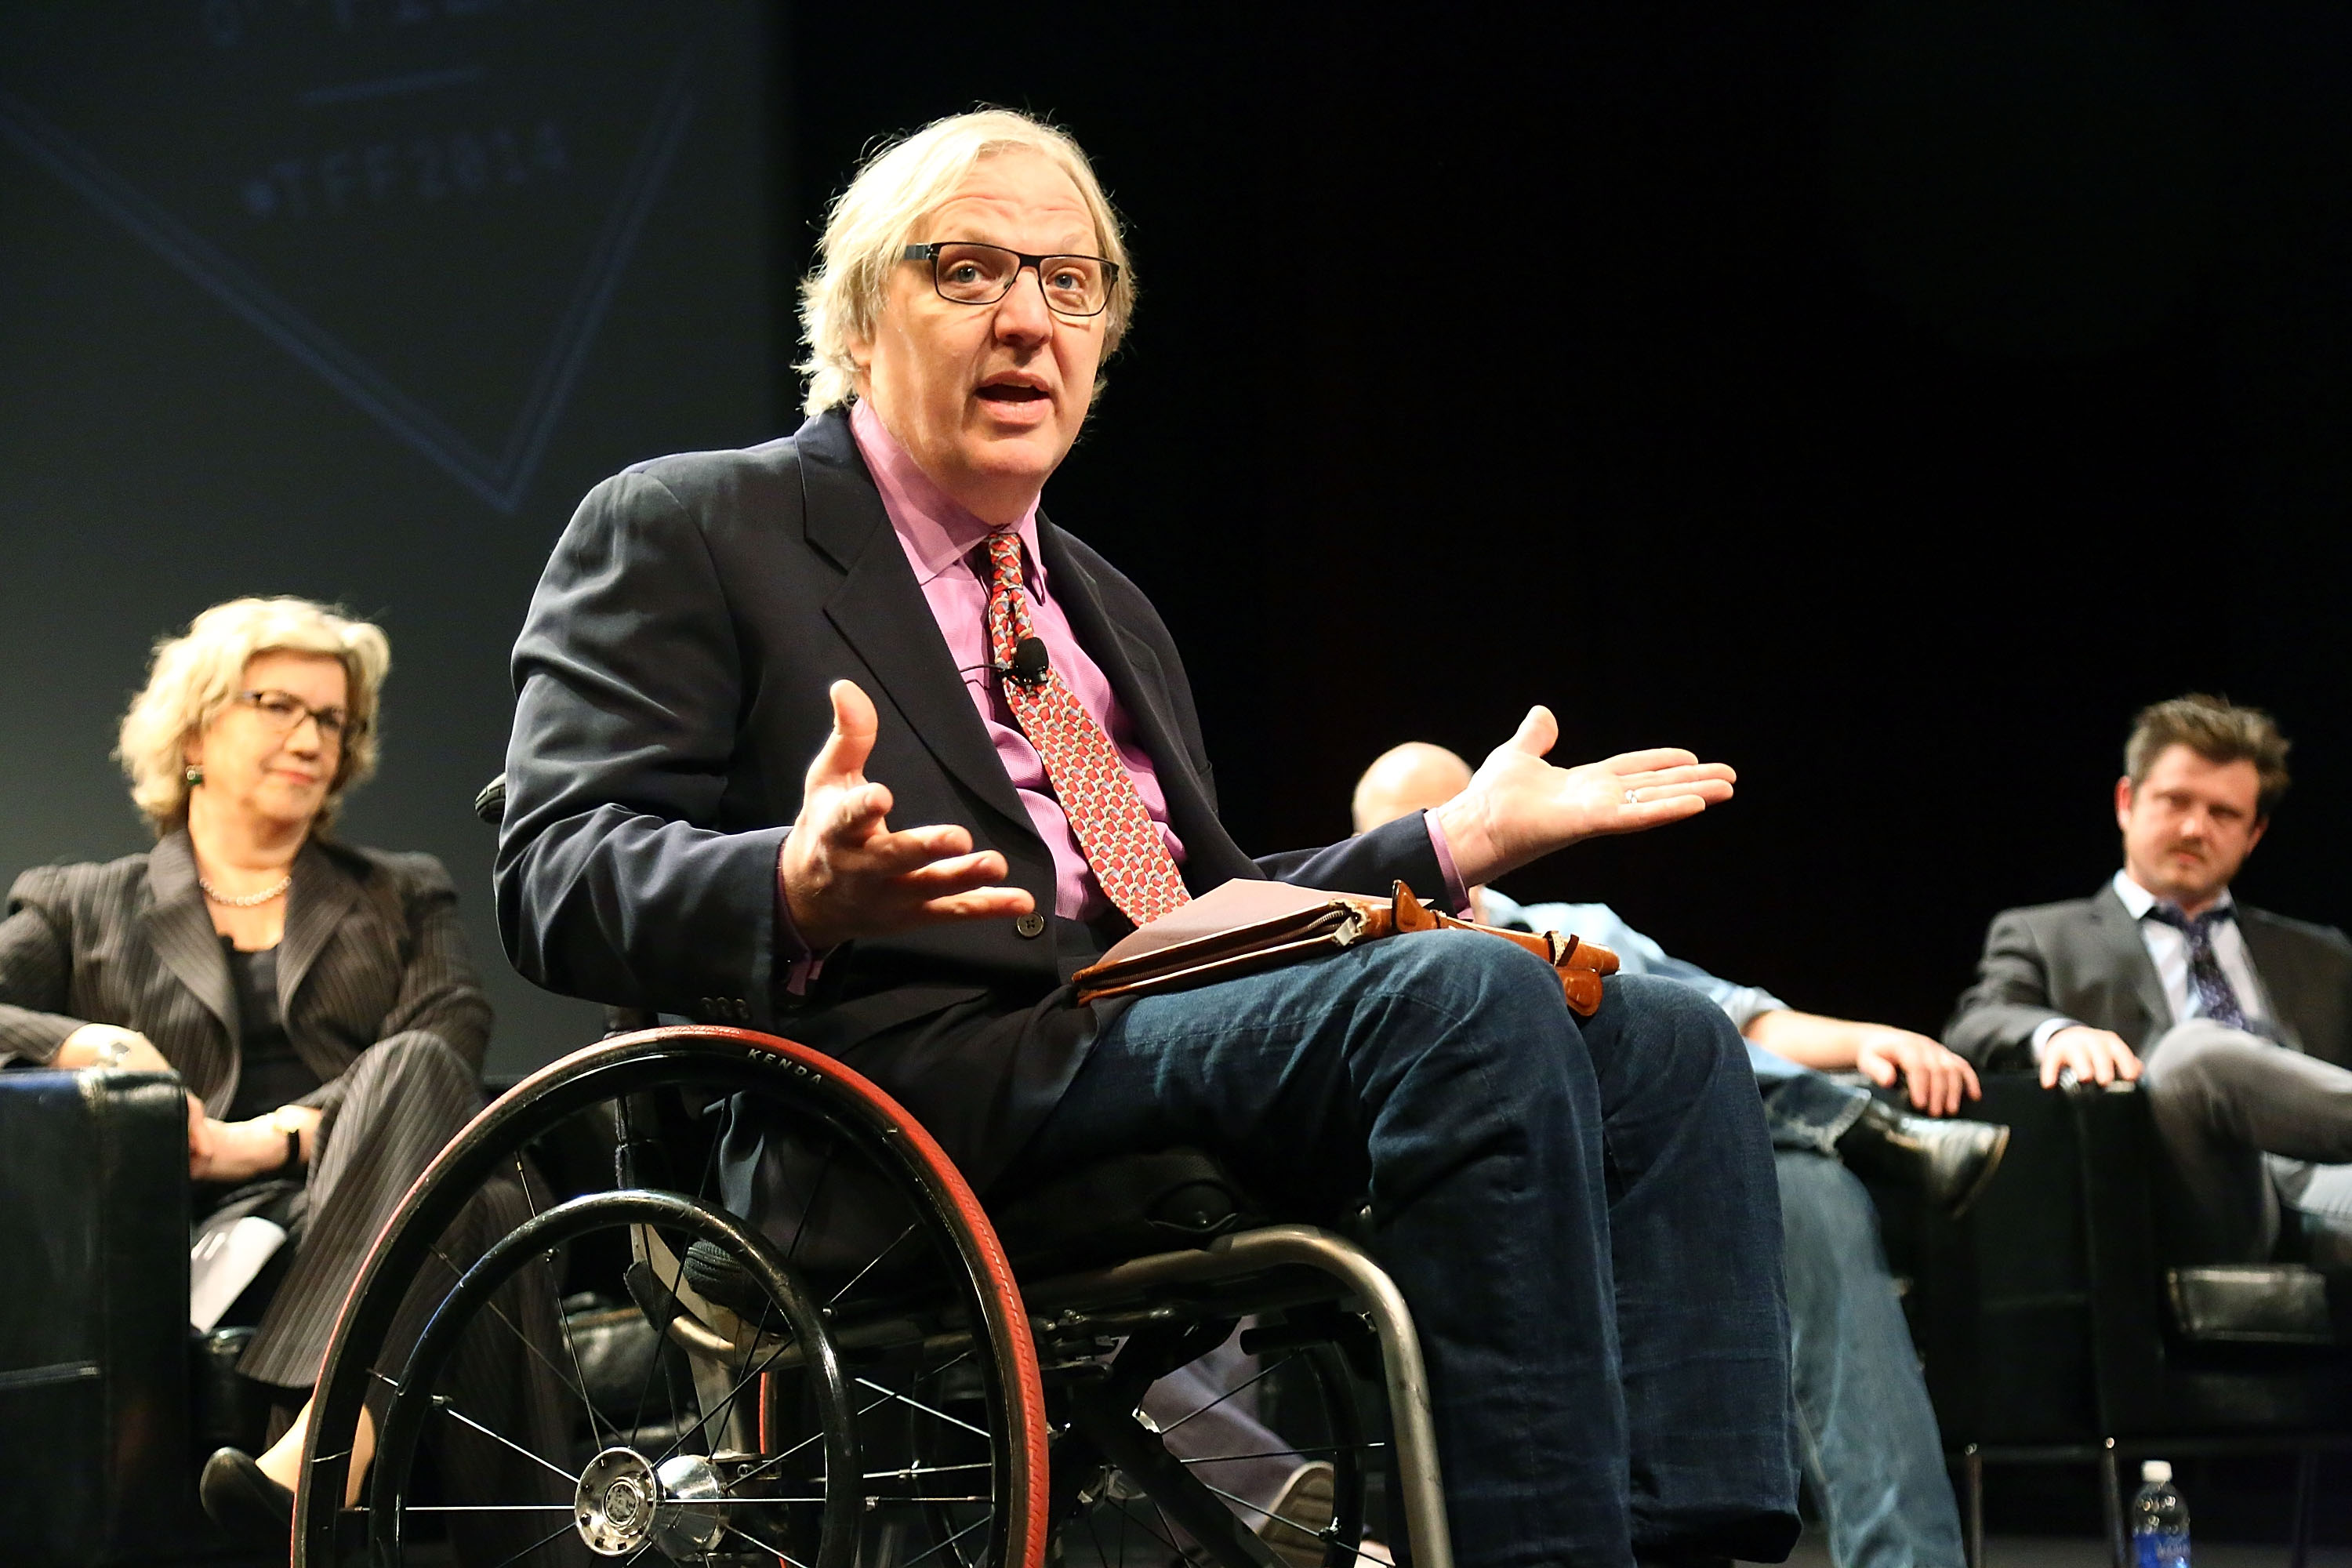 Reporter John Hockenberry speaks at the Tribeca Film Festival on April 24, 2014 in New York City.